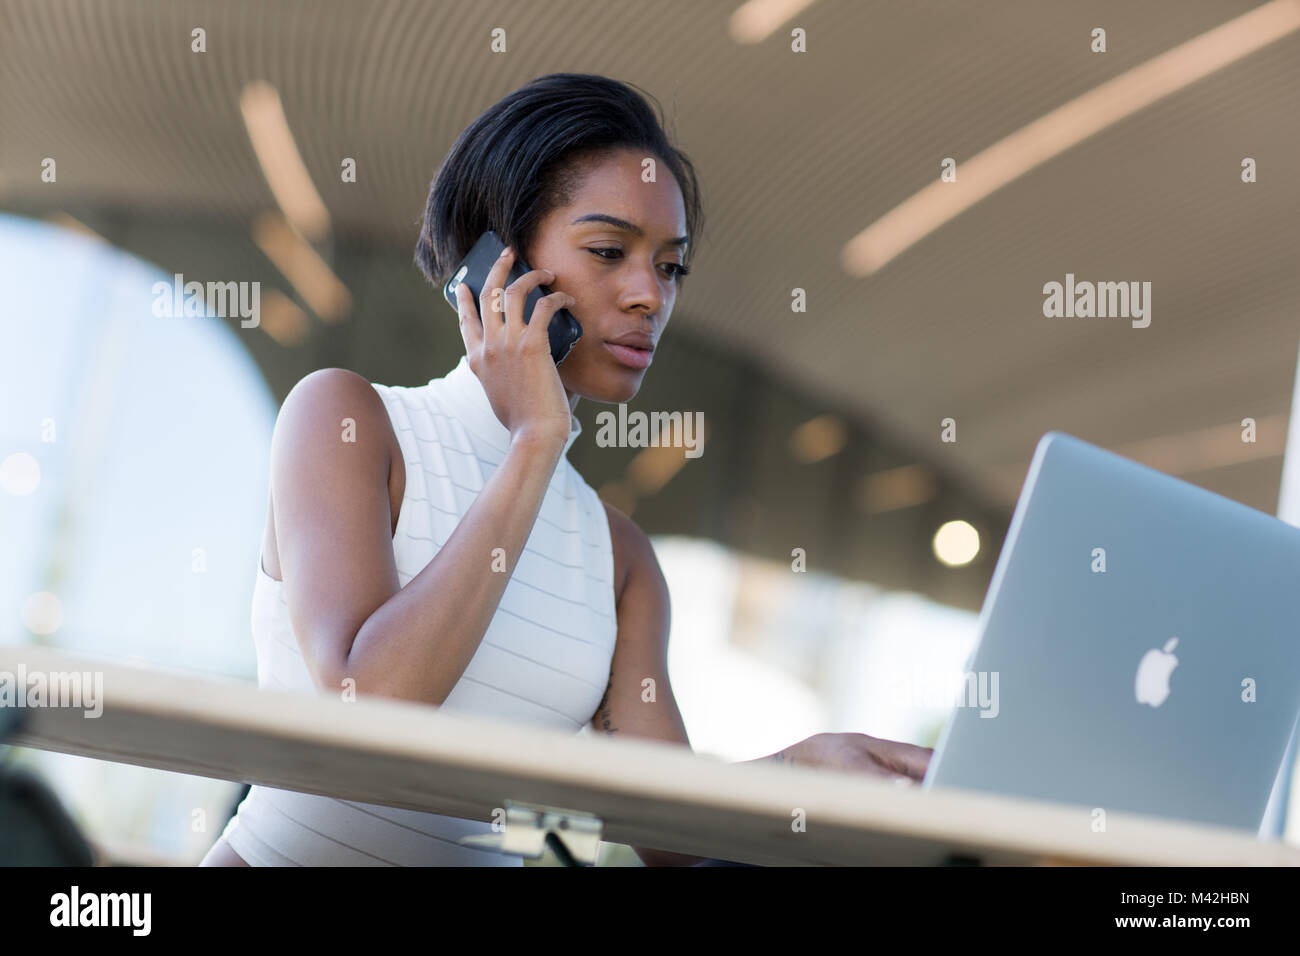 Businesswoman working in café - Stock Image